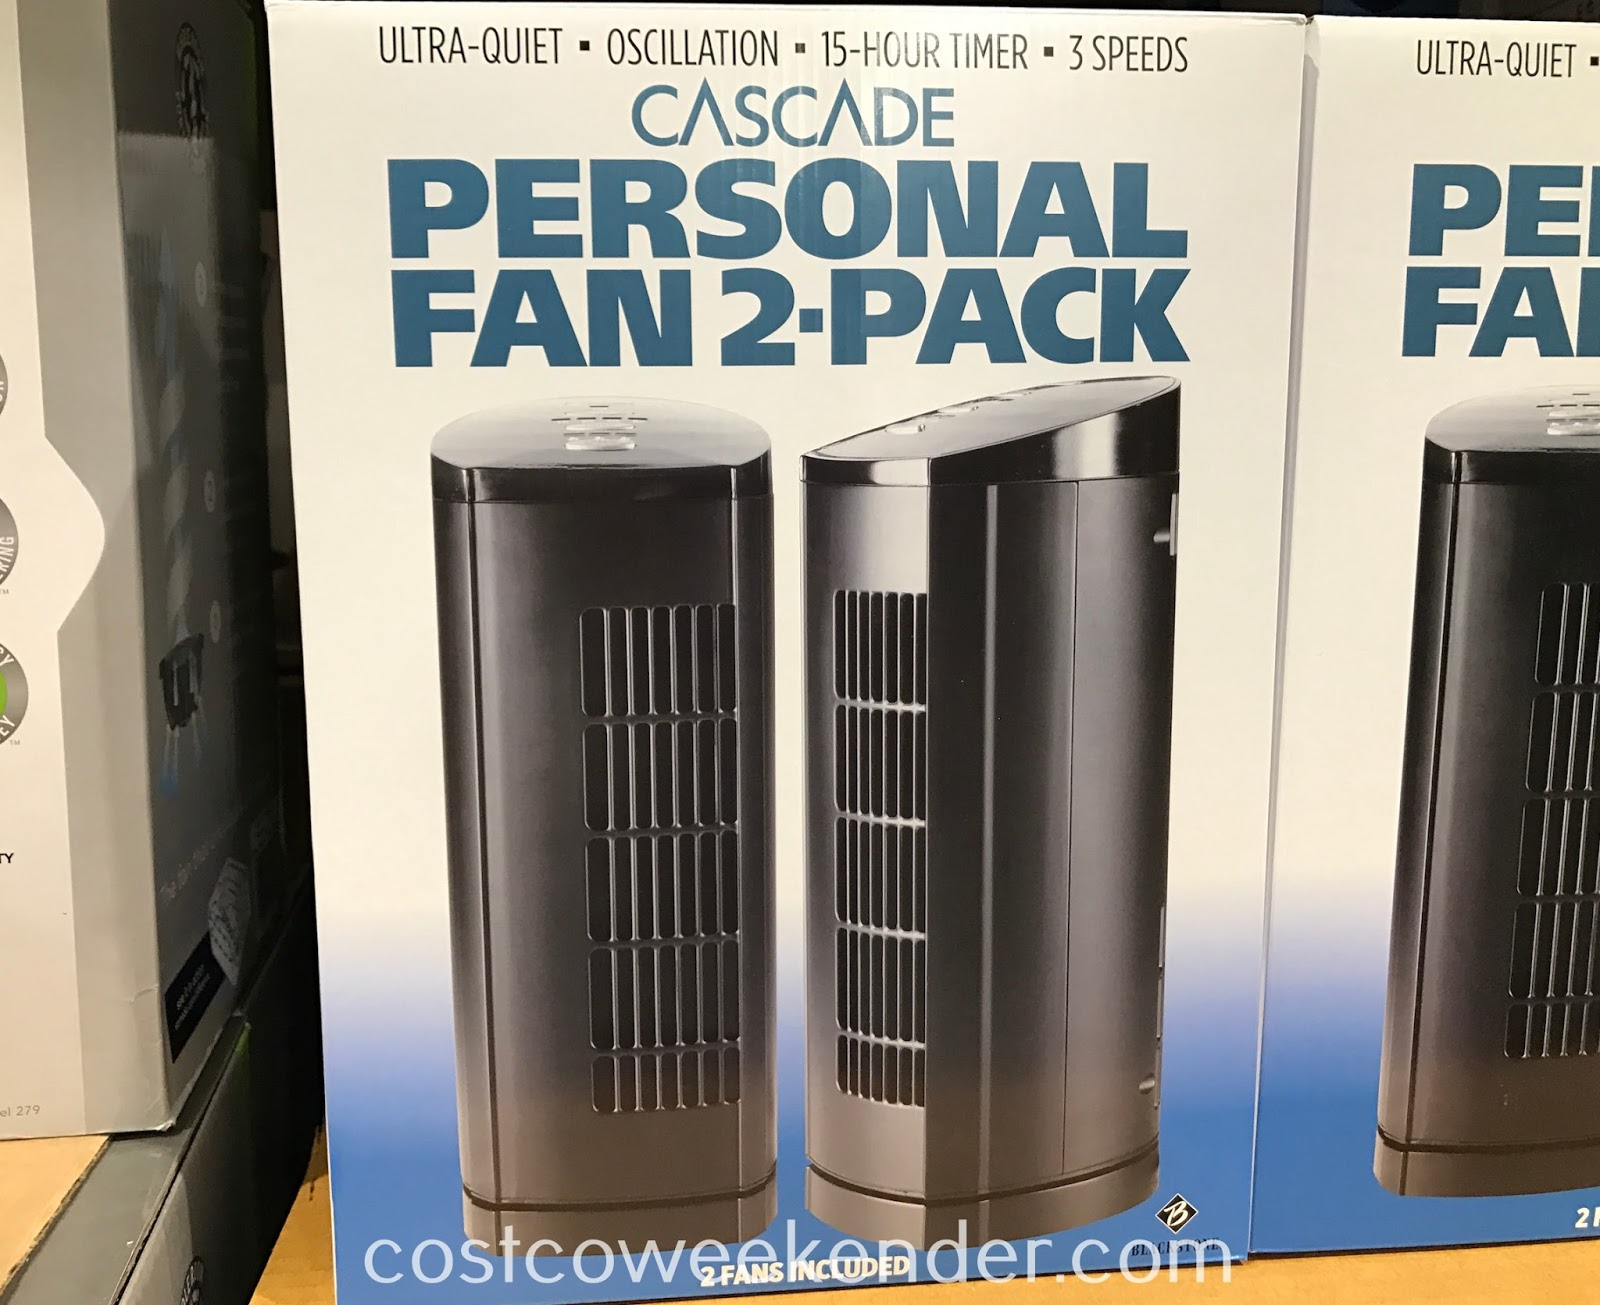 Stay cool this summer with the Blackstone Cascade Personal Fan